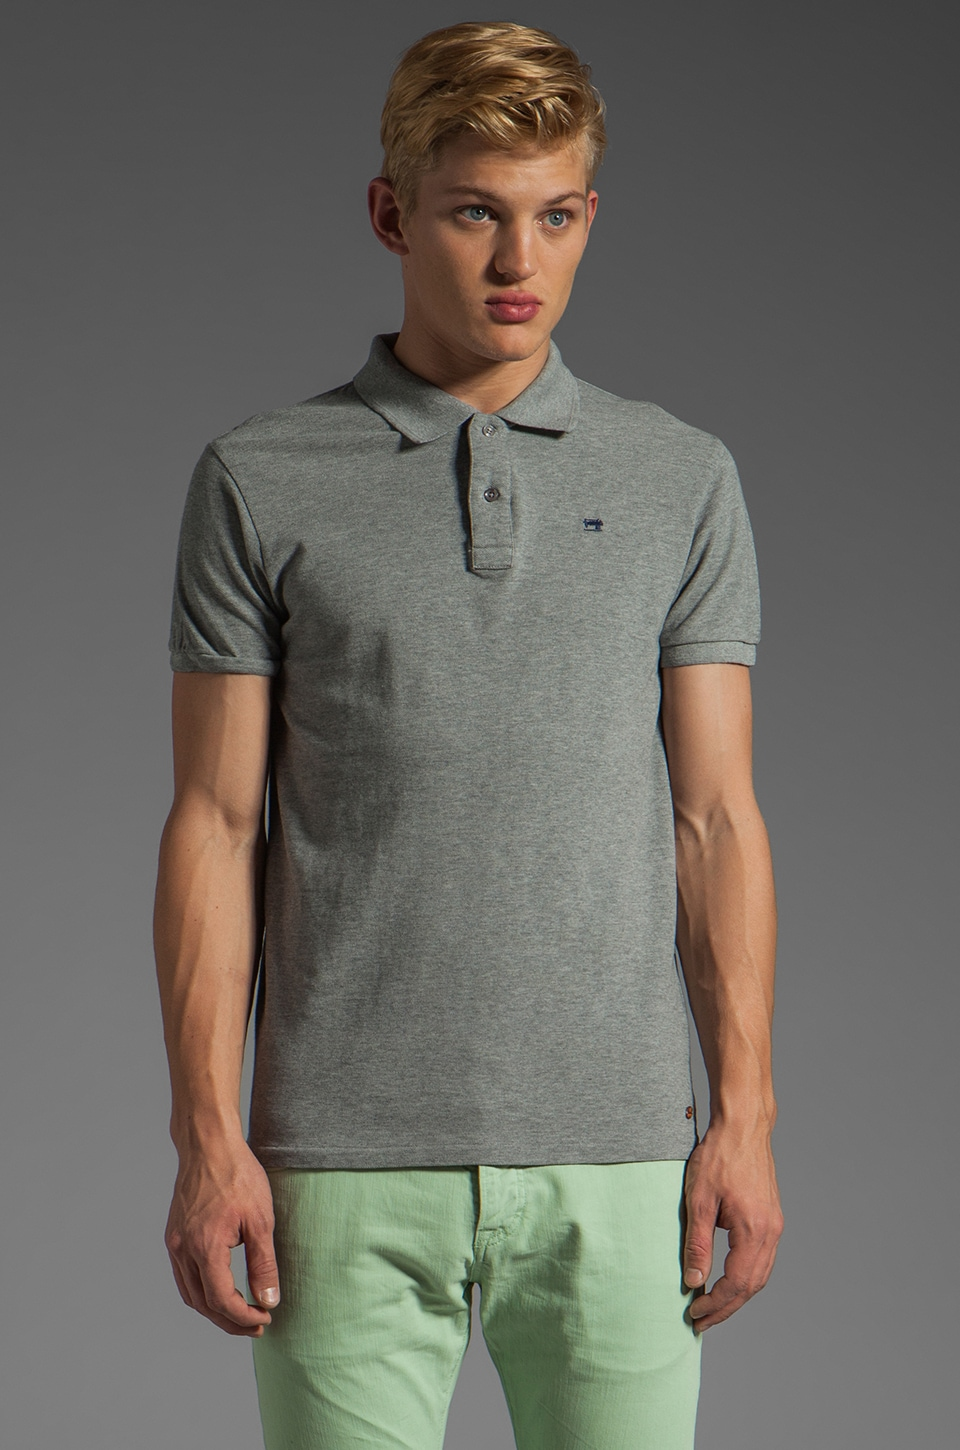 Scotch & Soda Pique Polo in Grey